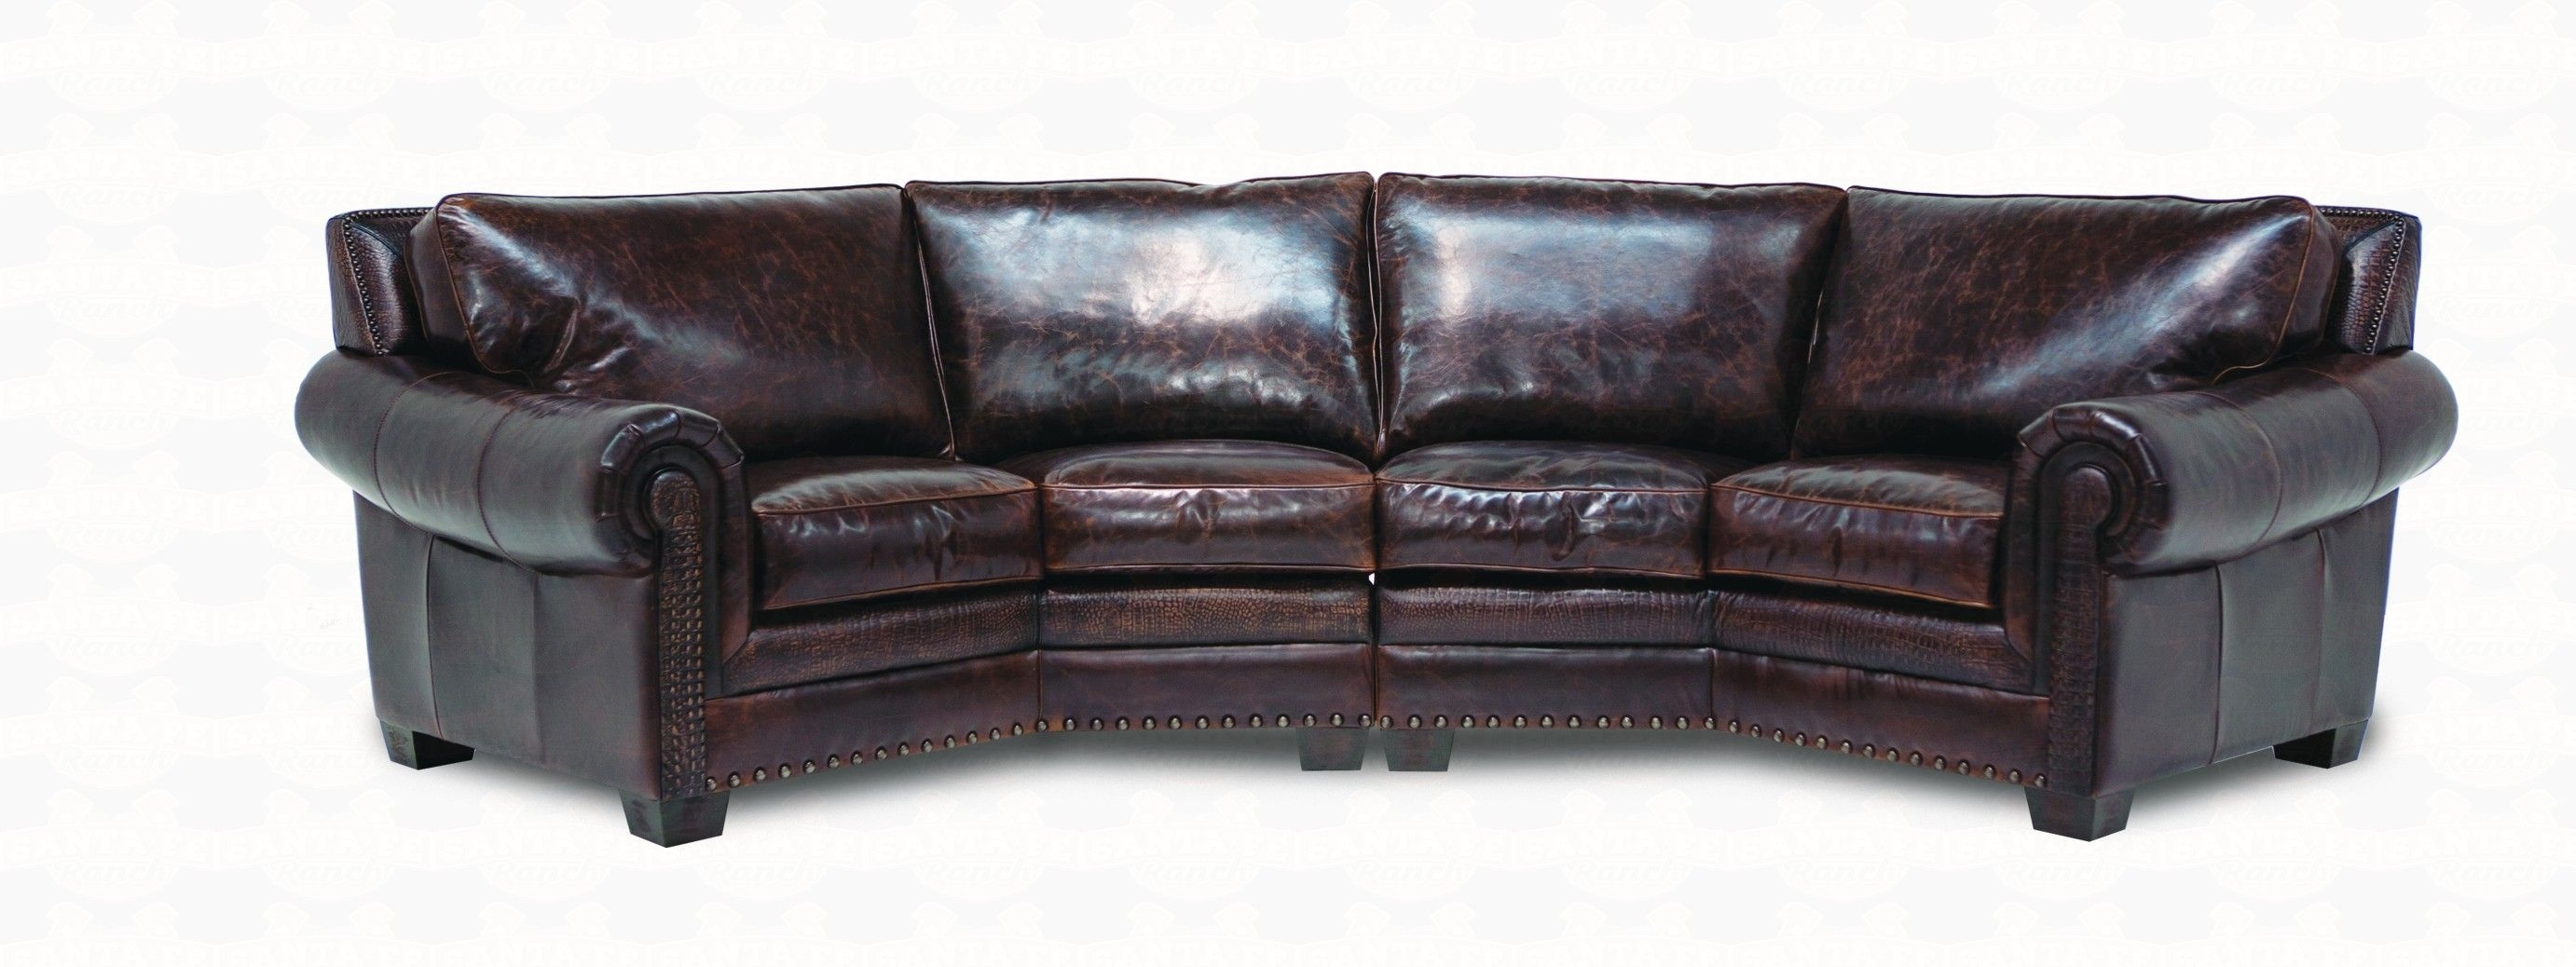 Nice Craigslist Leather Sofa , Beautiful Craigslist Leather Sofa 77 Throughout Craigslist Leather Sofas (Image 6 of 10)